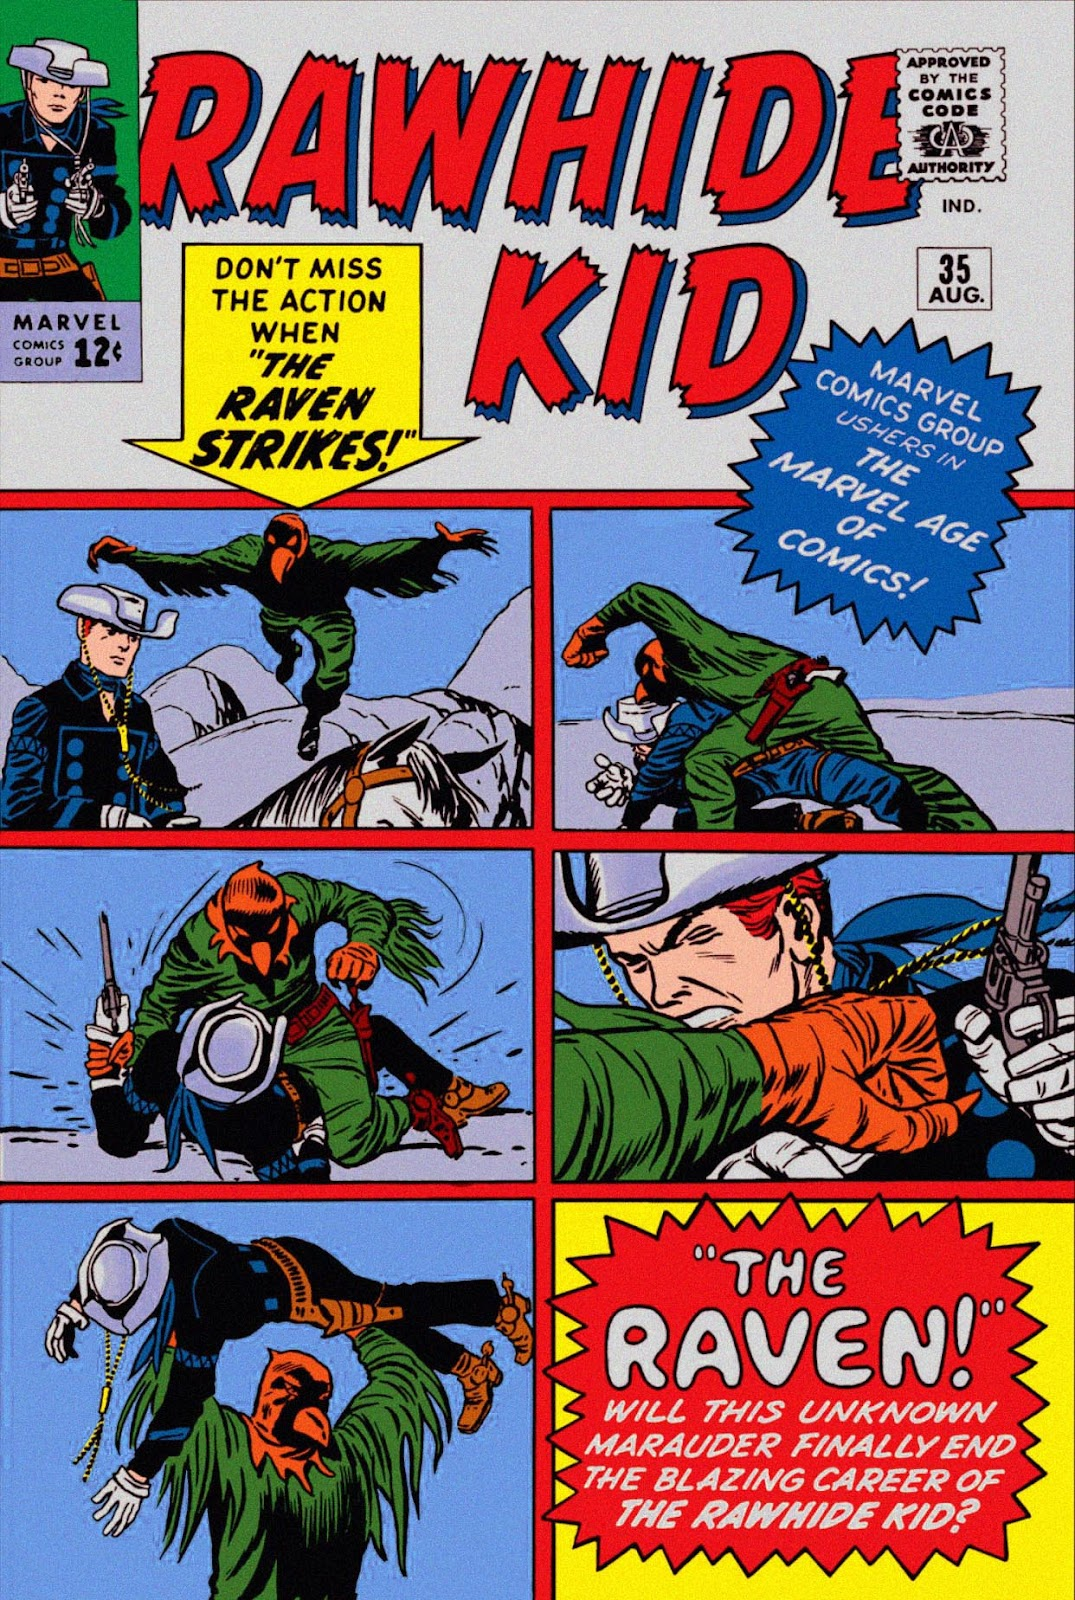 The Rawhide Kid (1955) issue 35 - Page 37